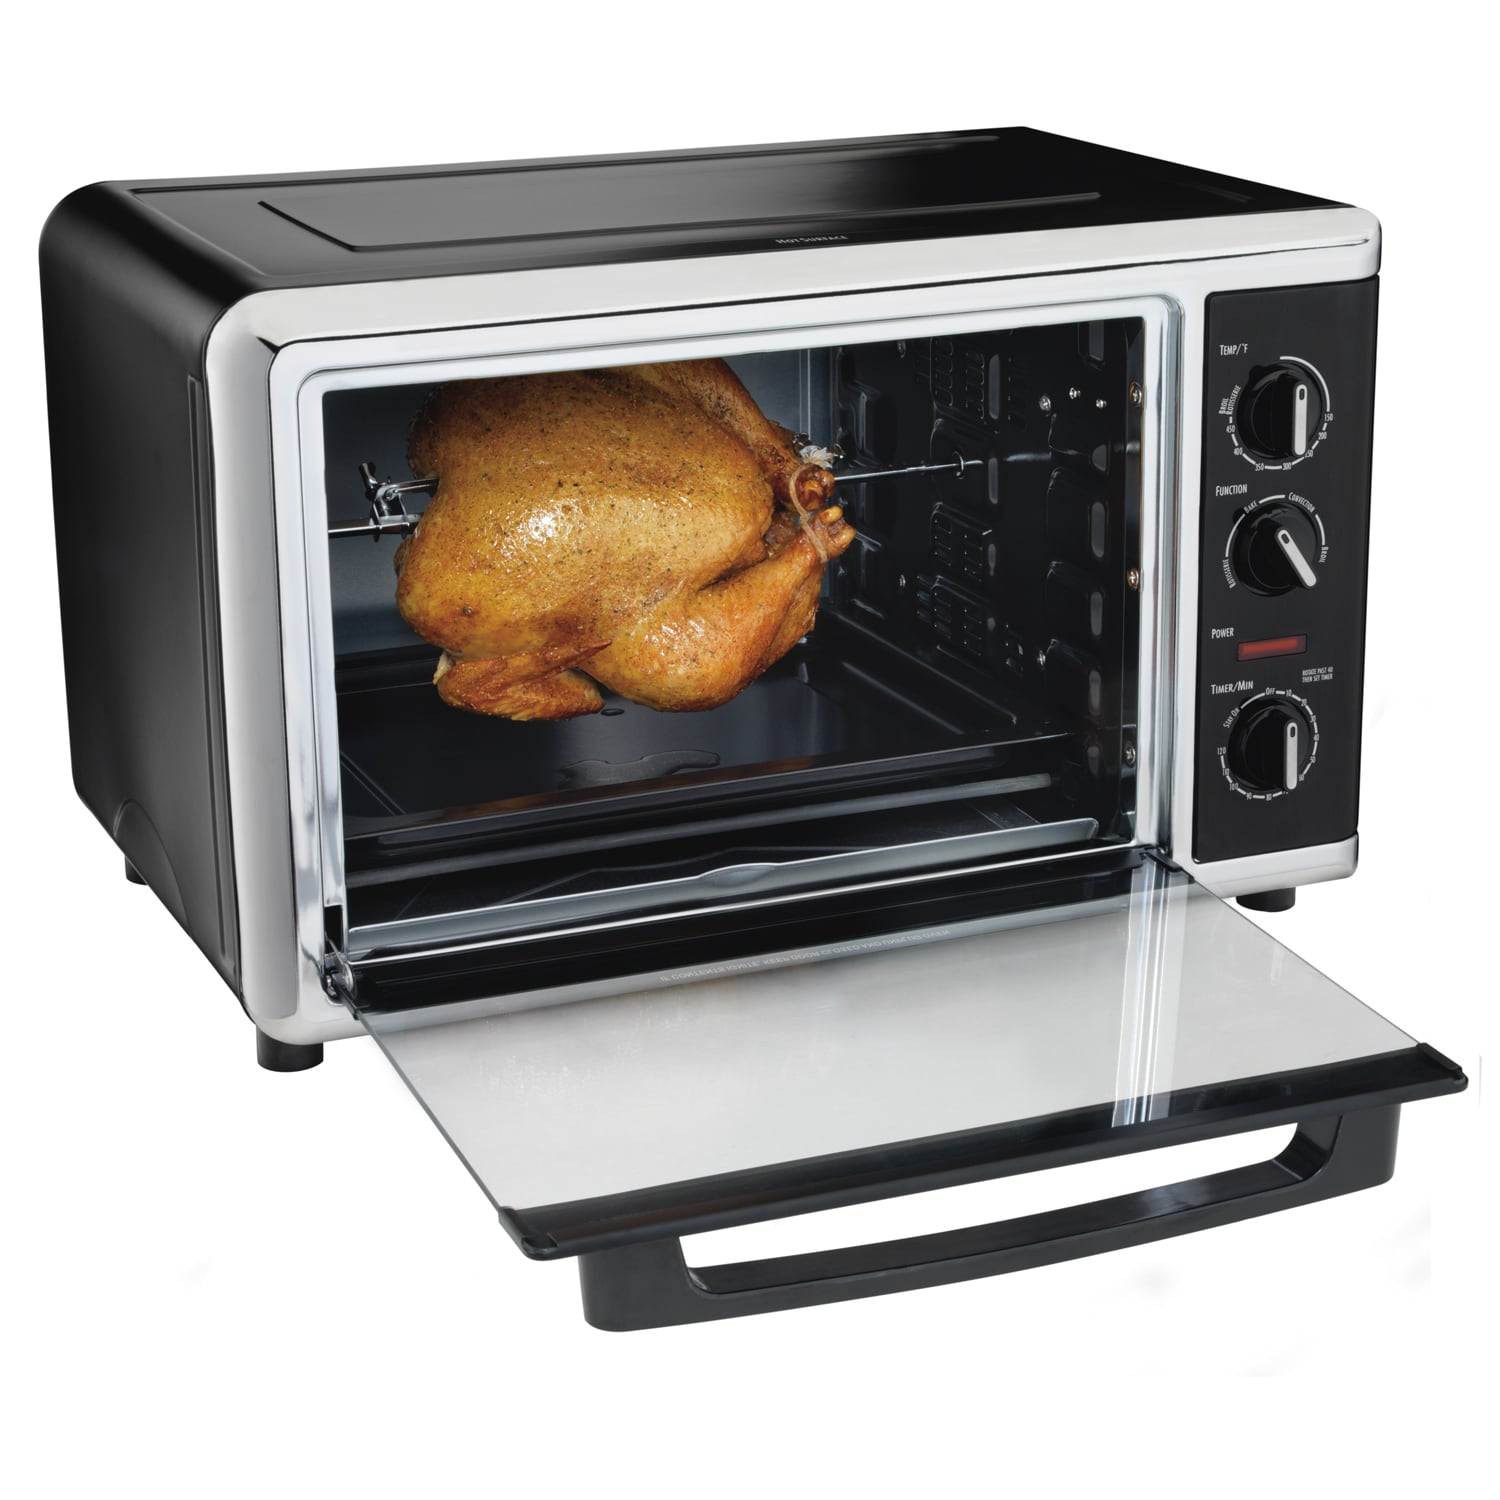 Hamilton Beach Black Countertop Oven with Convection and ...